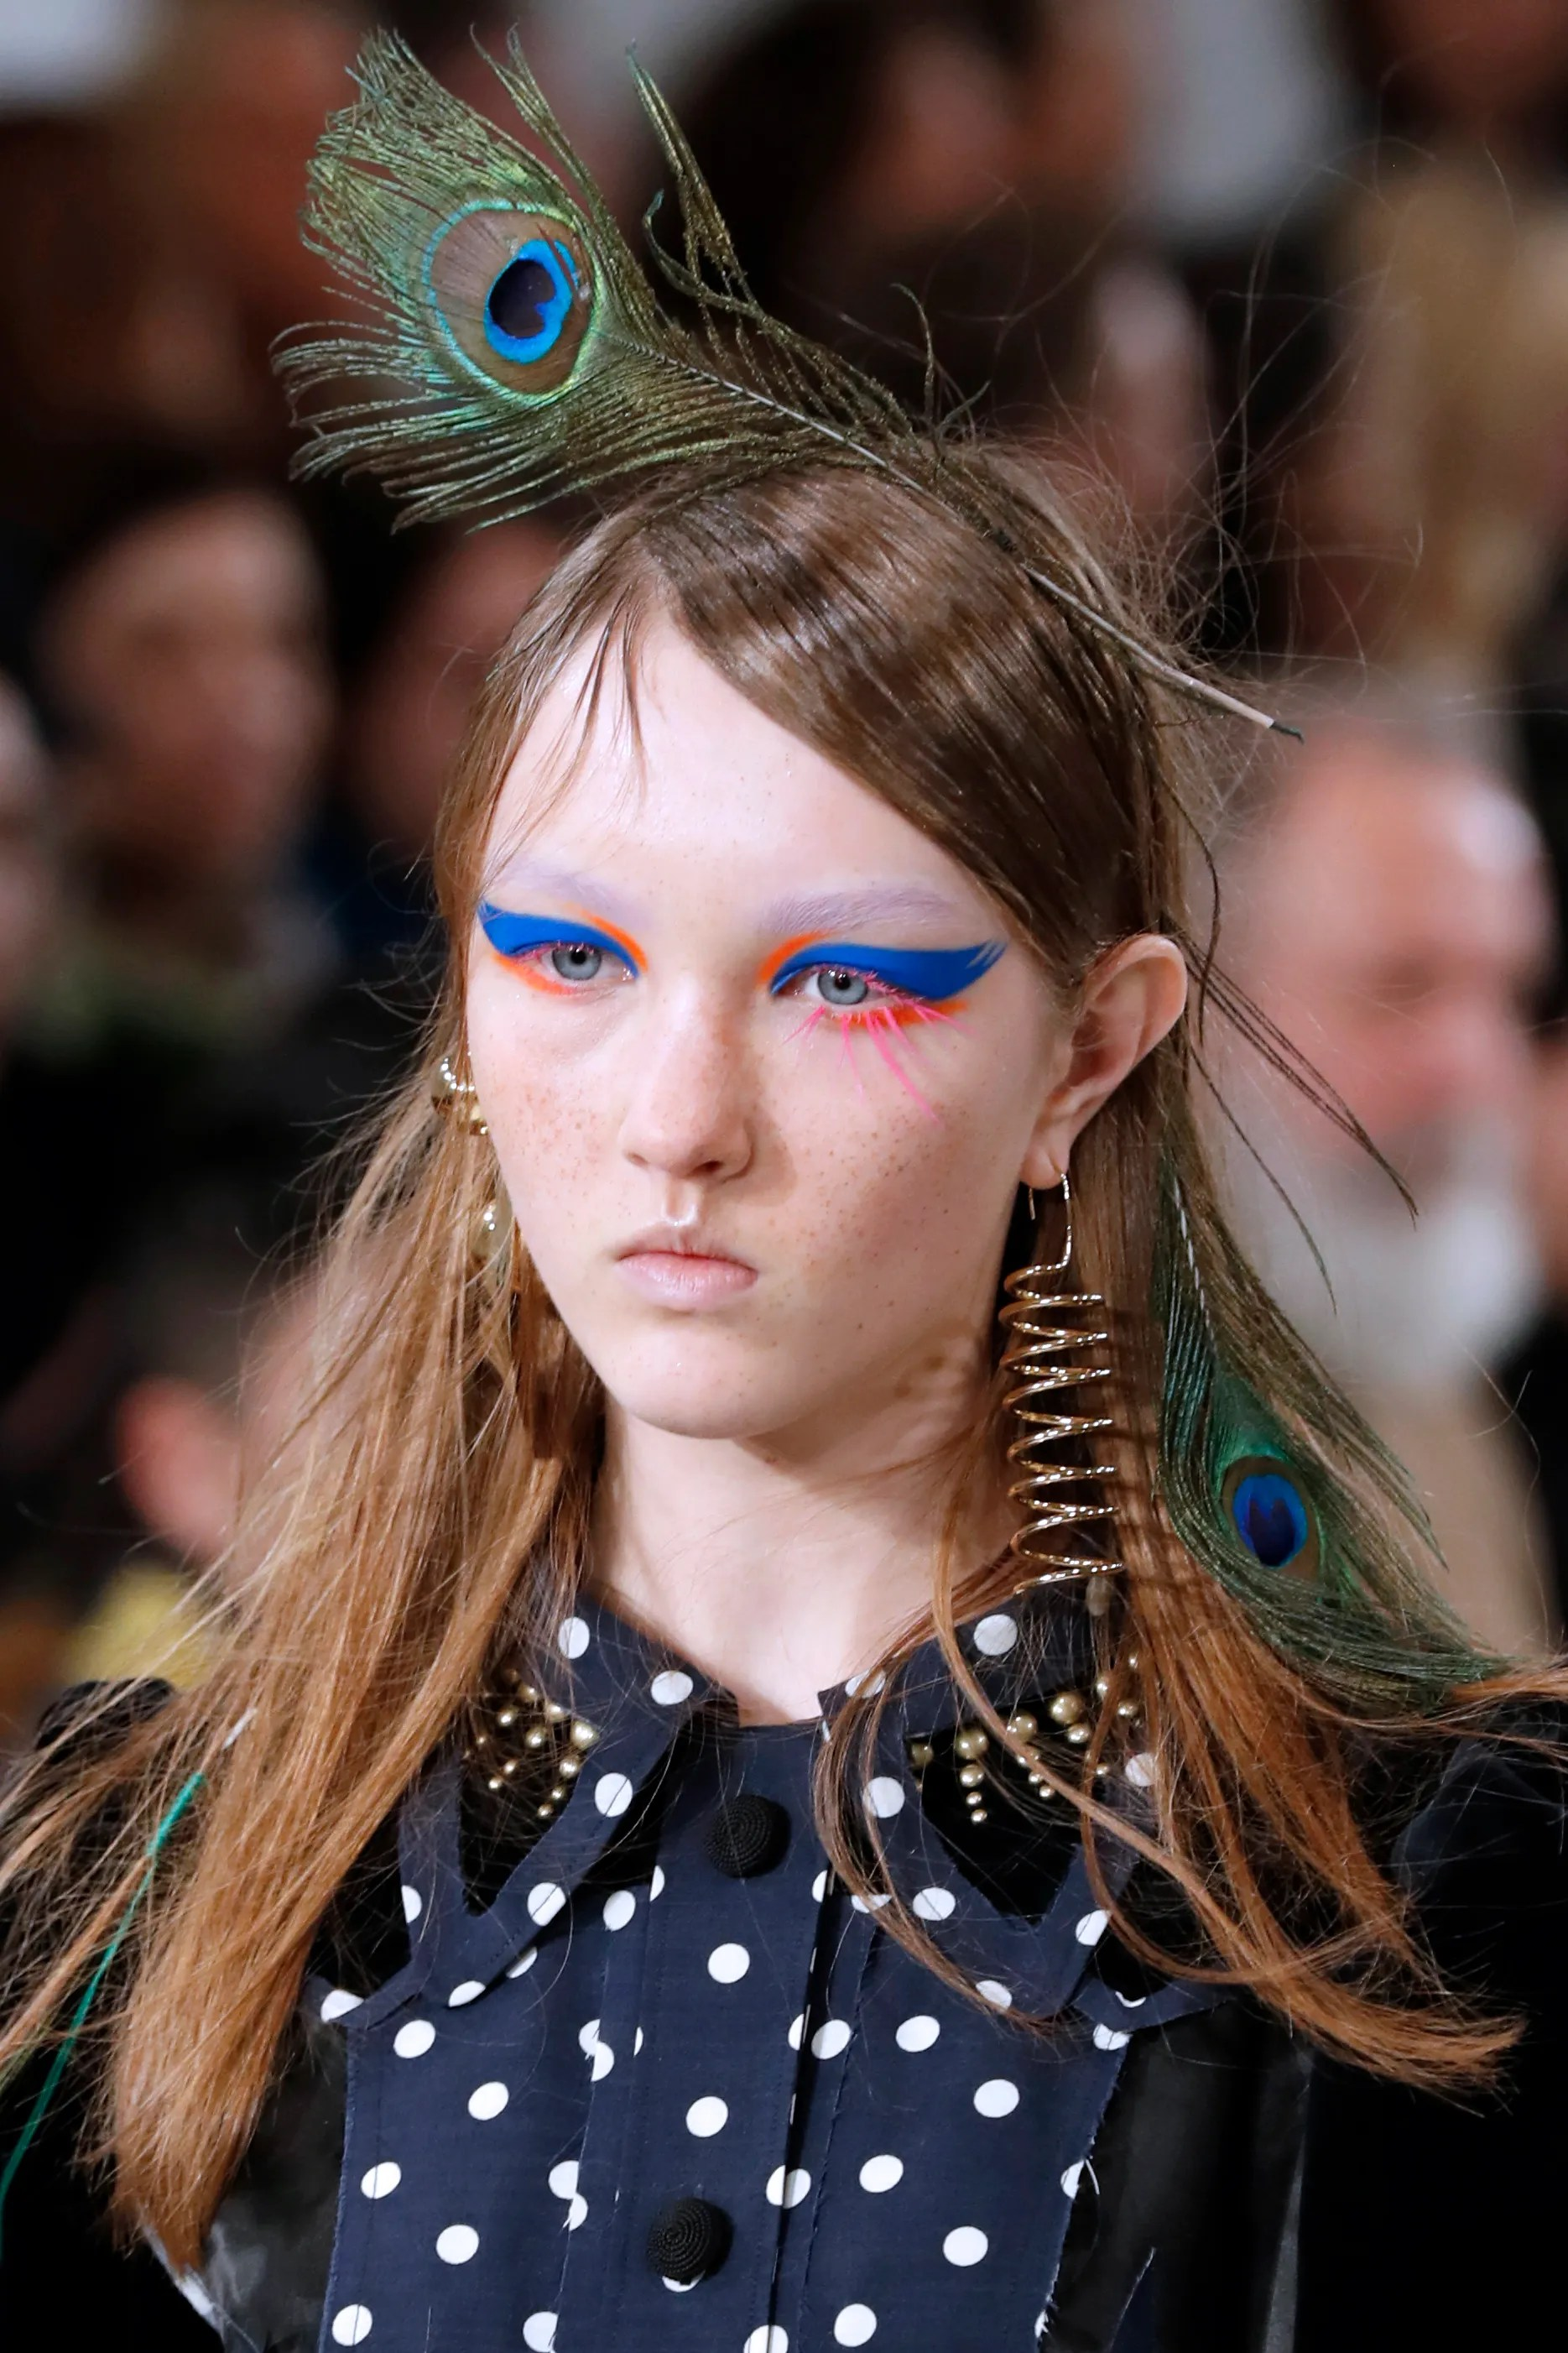 Maison Margiela Fall See All The Psychedelic Beauty